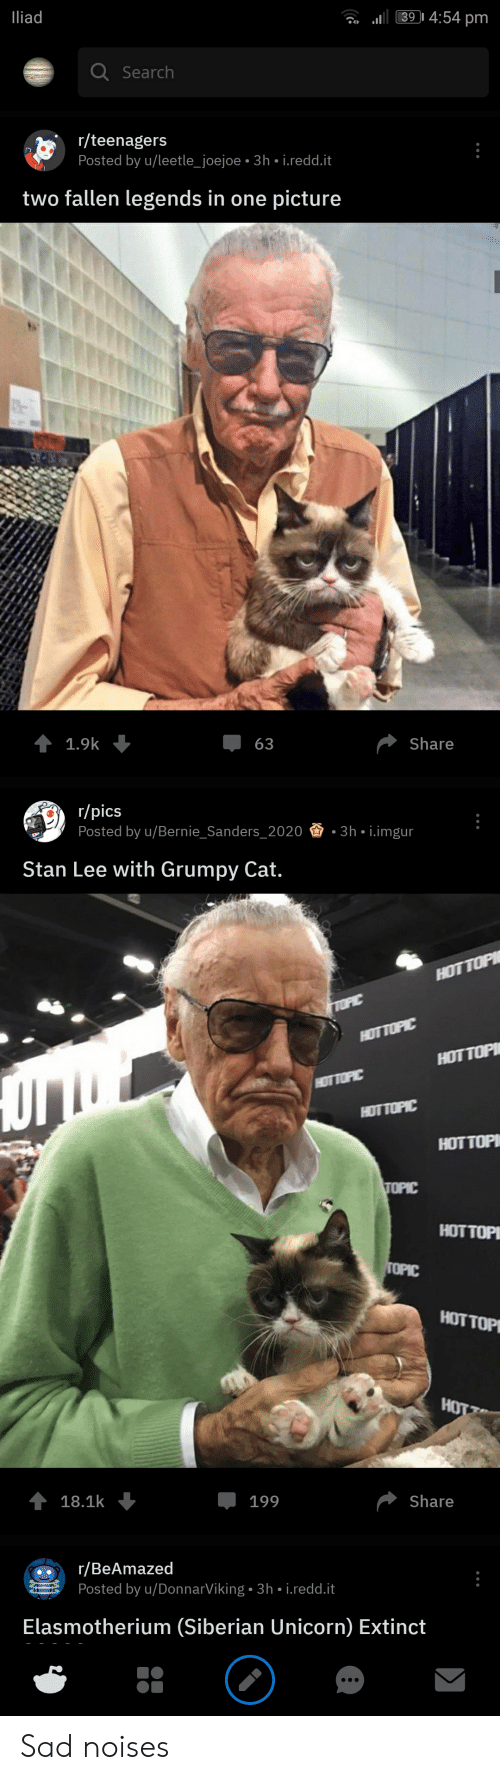 Bernie Sanders, Stan, and Stan Lee: 393 4:54 pm  liad  Q Search  r/teenagers  Posted by u/leetle_joejoe.3h-i.redd.it  two fallen legends in one picture  џ 63  1.9k  Share  r/pics  Posted by u/Bernie-Sanders-2020  -3h-İ.imgur  Stan Lee with Grumpy Cat  HOT TOPIC  HOT TOP  HOTTOP  HOT TOP  18.1k  199  Share  r/BeAmazed  Posted by u/DonnarViking. 3h i.redd.t  Elasmotherium (Siberian Unicorn) Extinct Sad noises